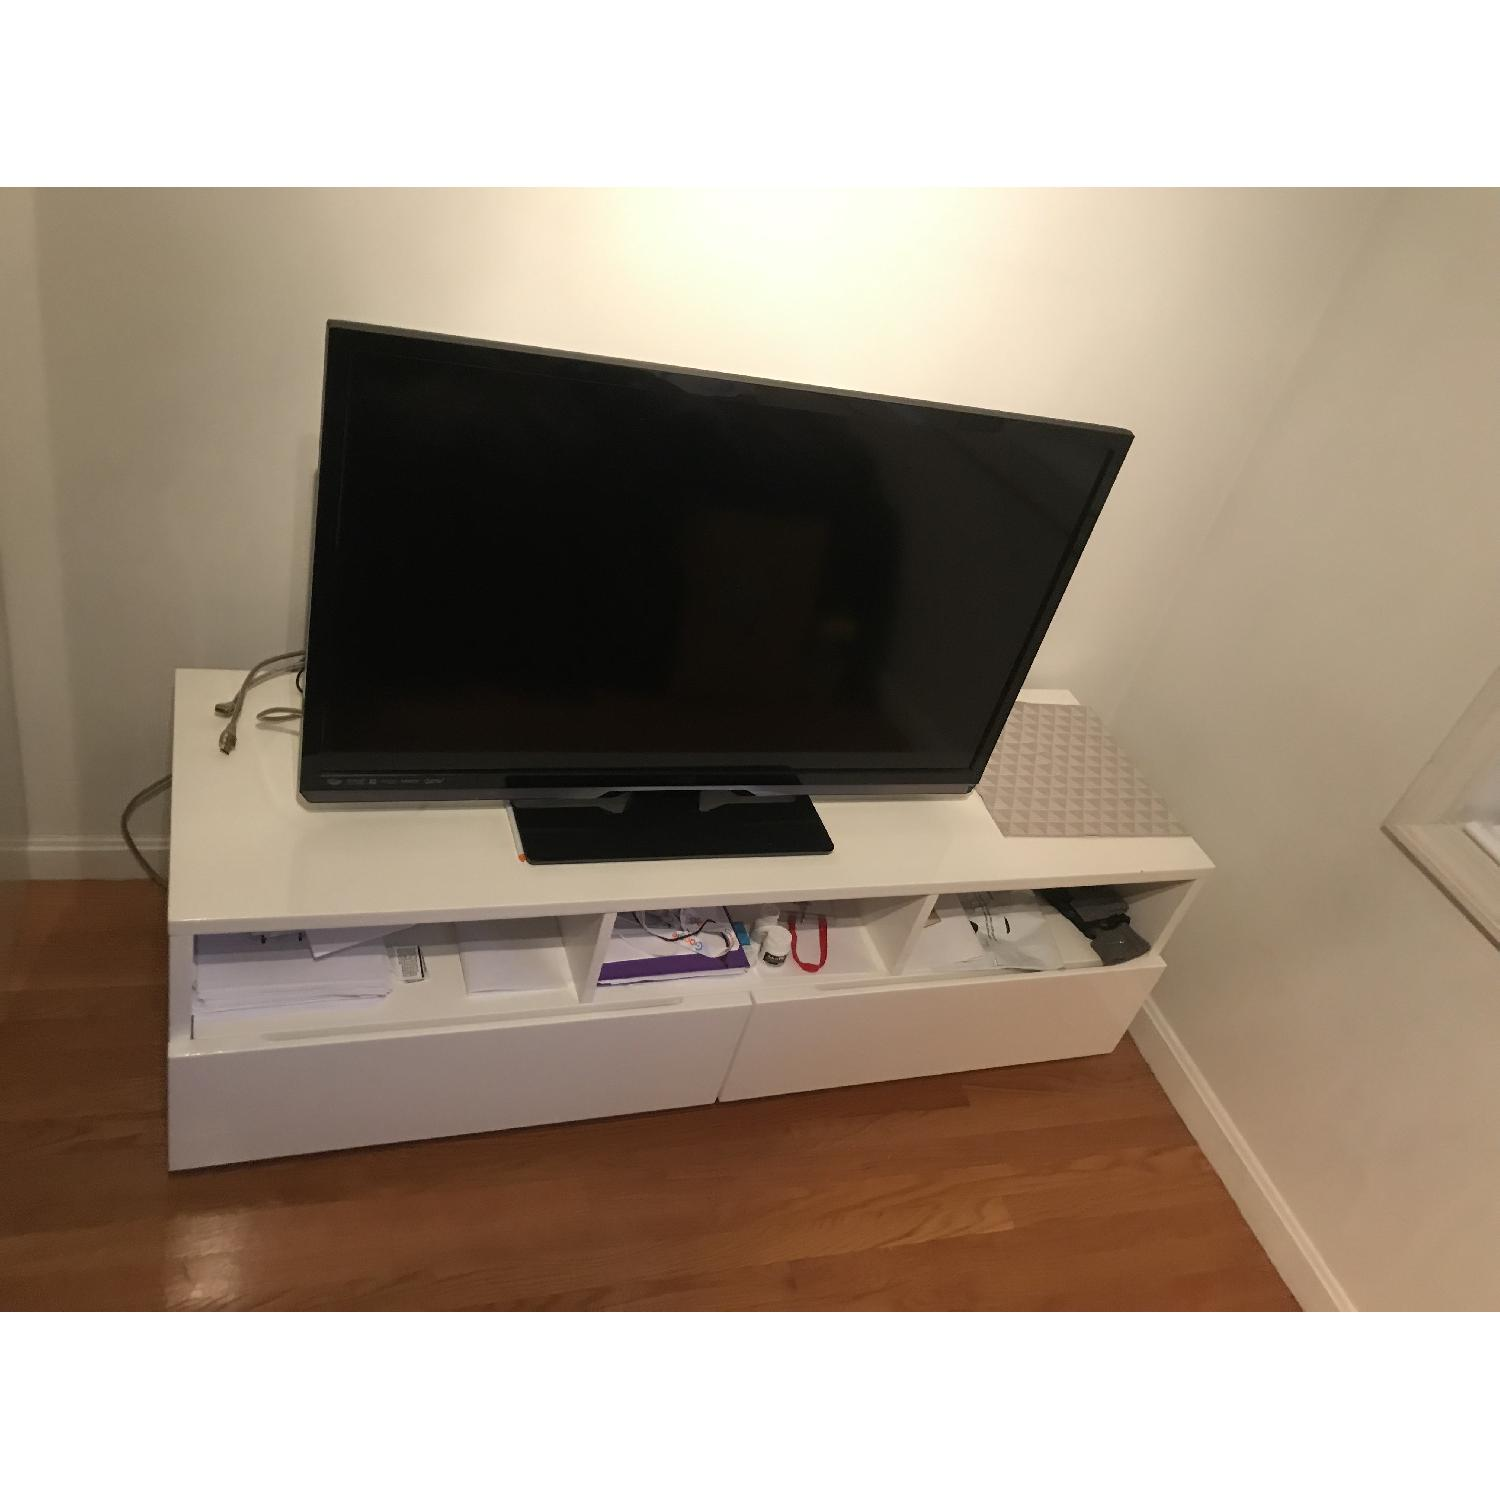 CB2 High Gloss White Modern TV Stand w/ 2 Drawers - image-3